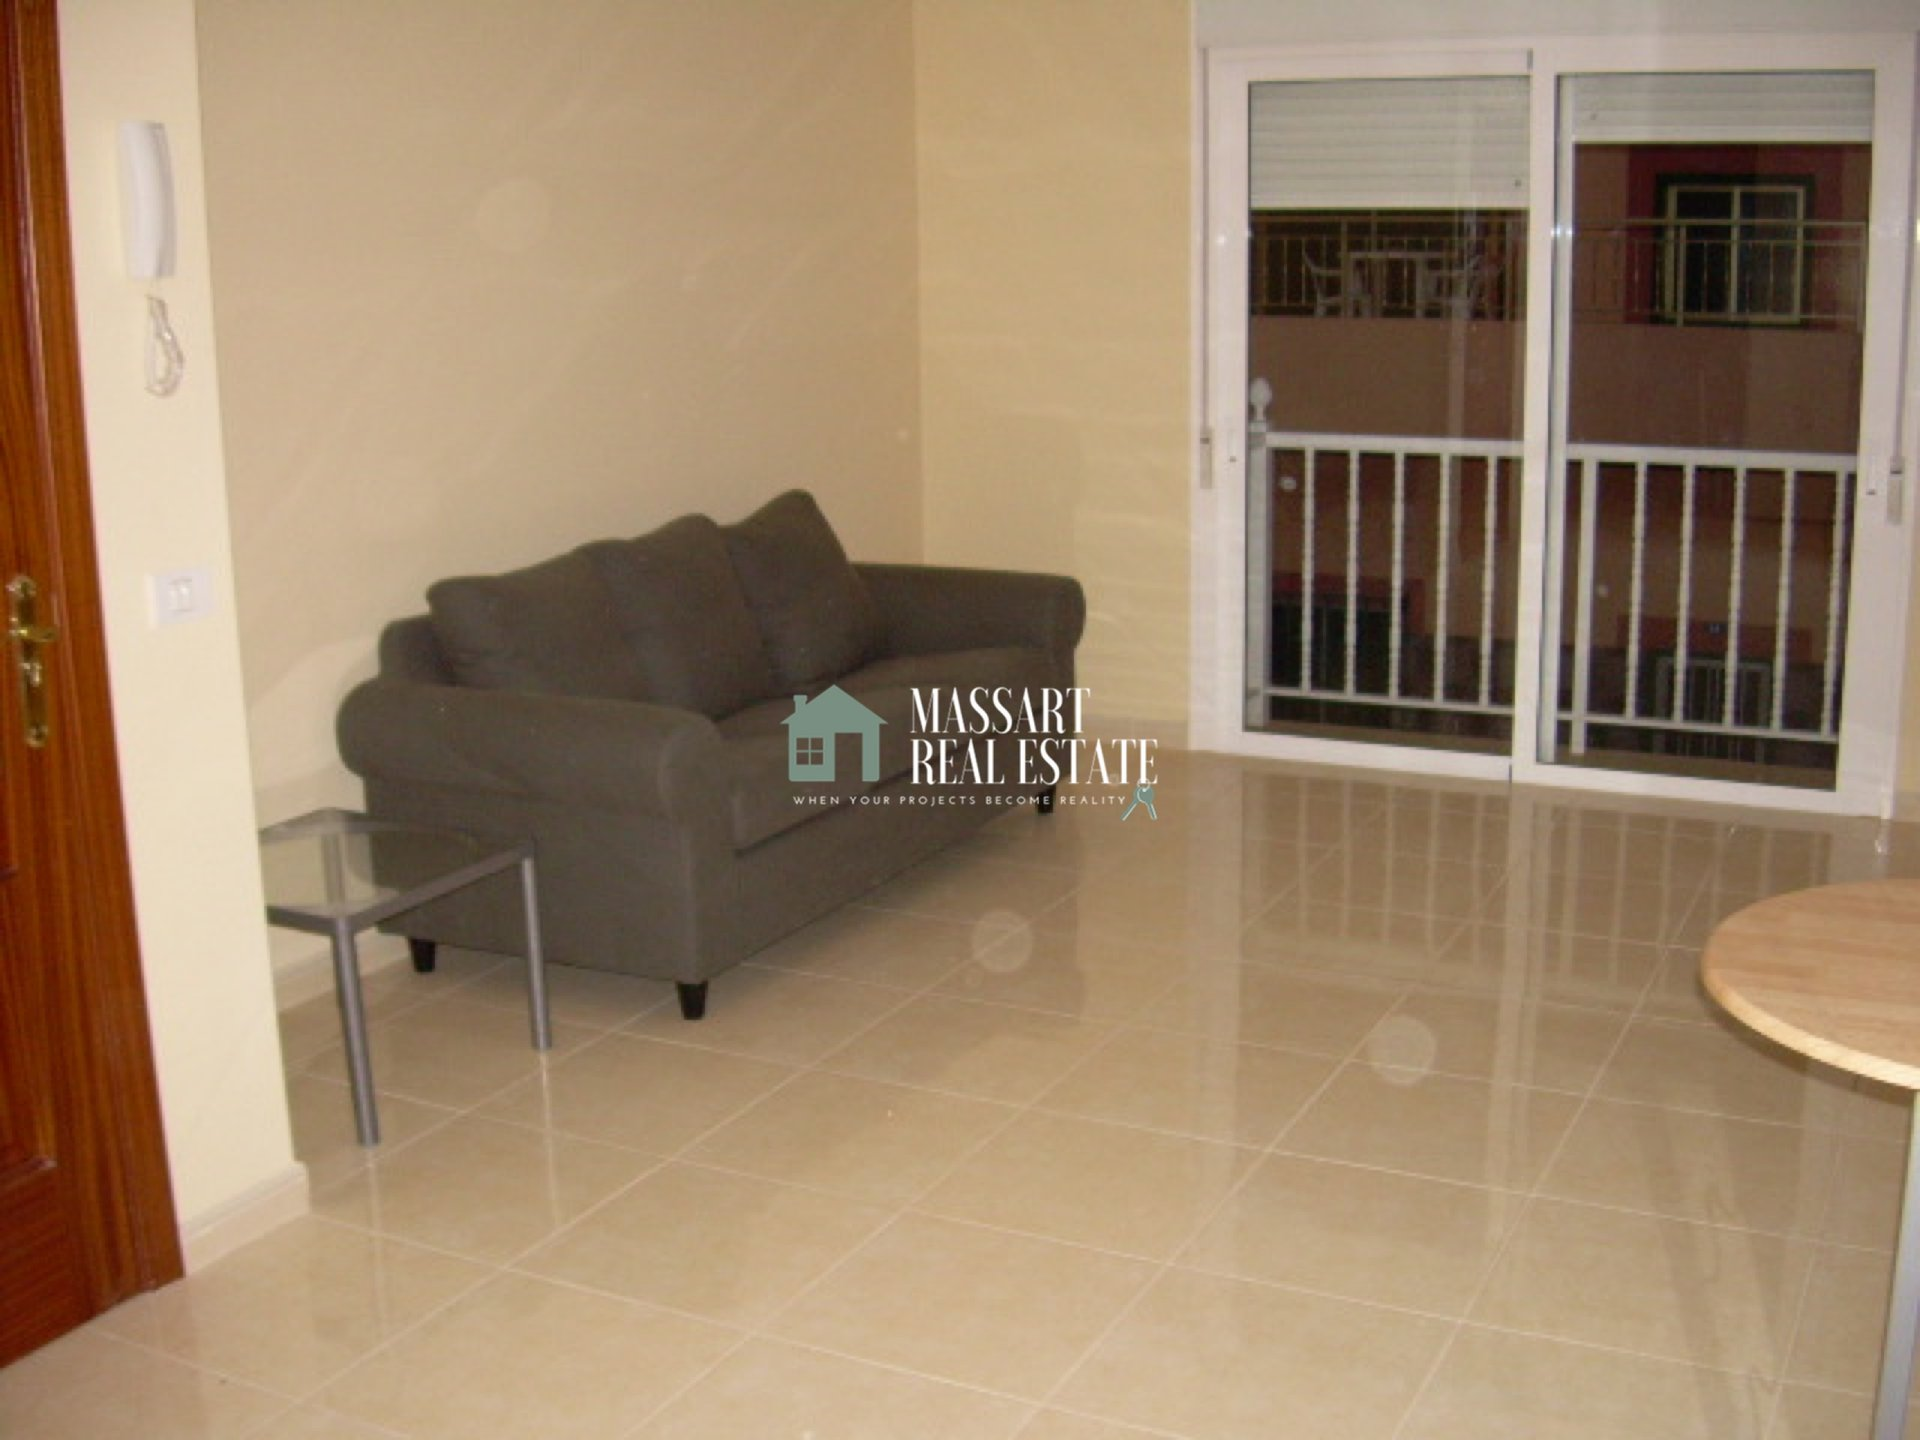 Cozy apartment for rent in Guargacho, ideal to enjoy a happy and quiet life as a couple or alone.